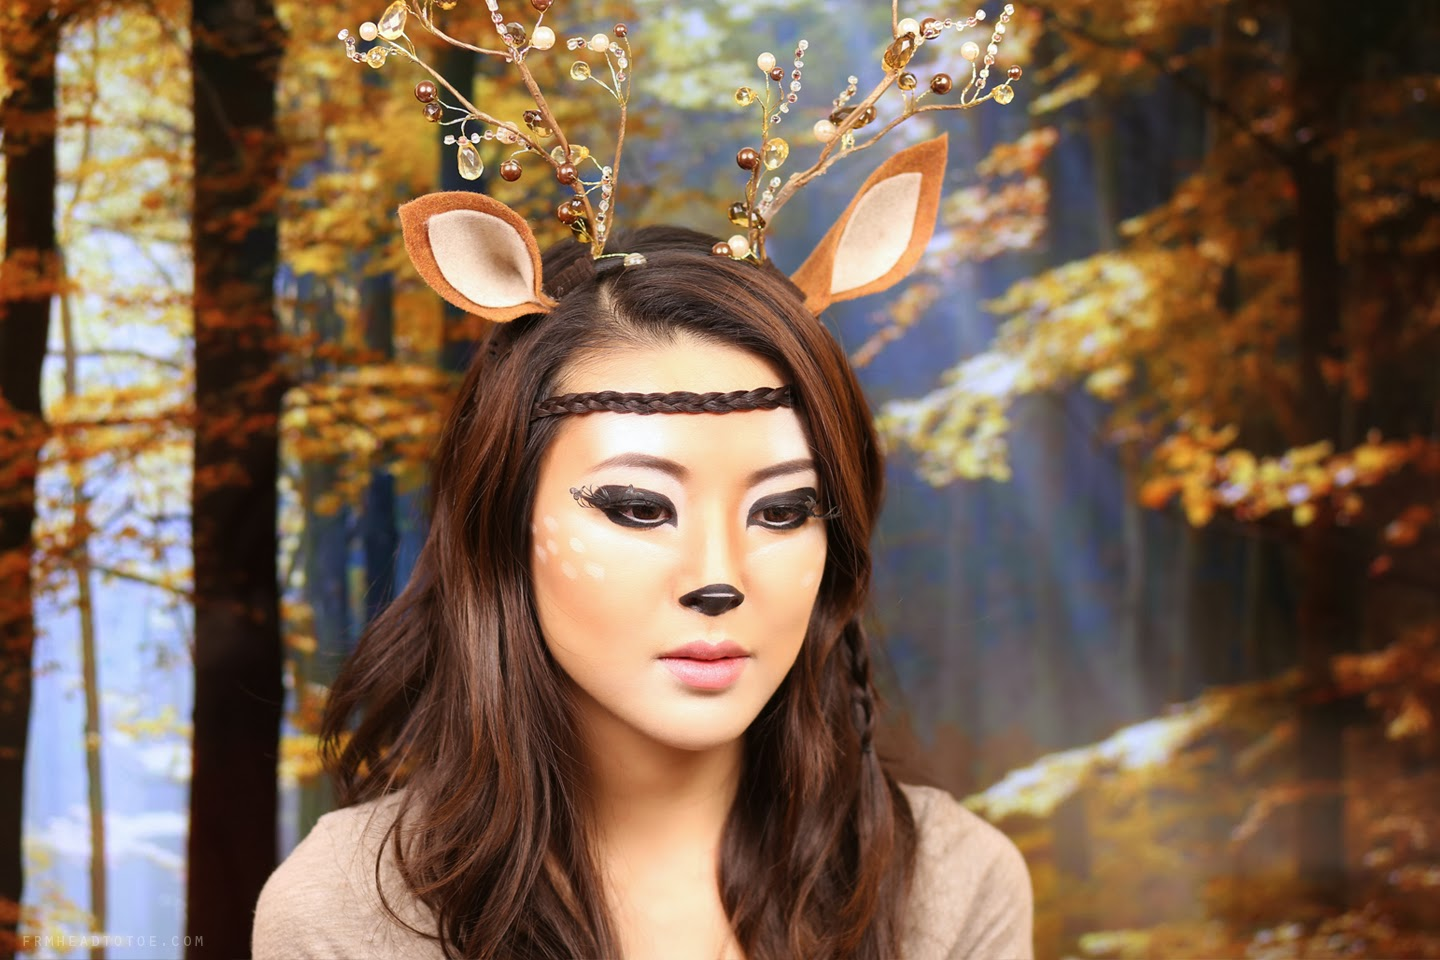 Pocahontas Kostüm Selber Machen Deer Makeup Tutorial Halloween 2013 From Head To Toe